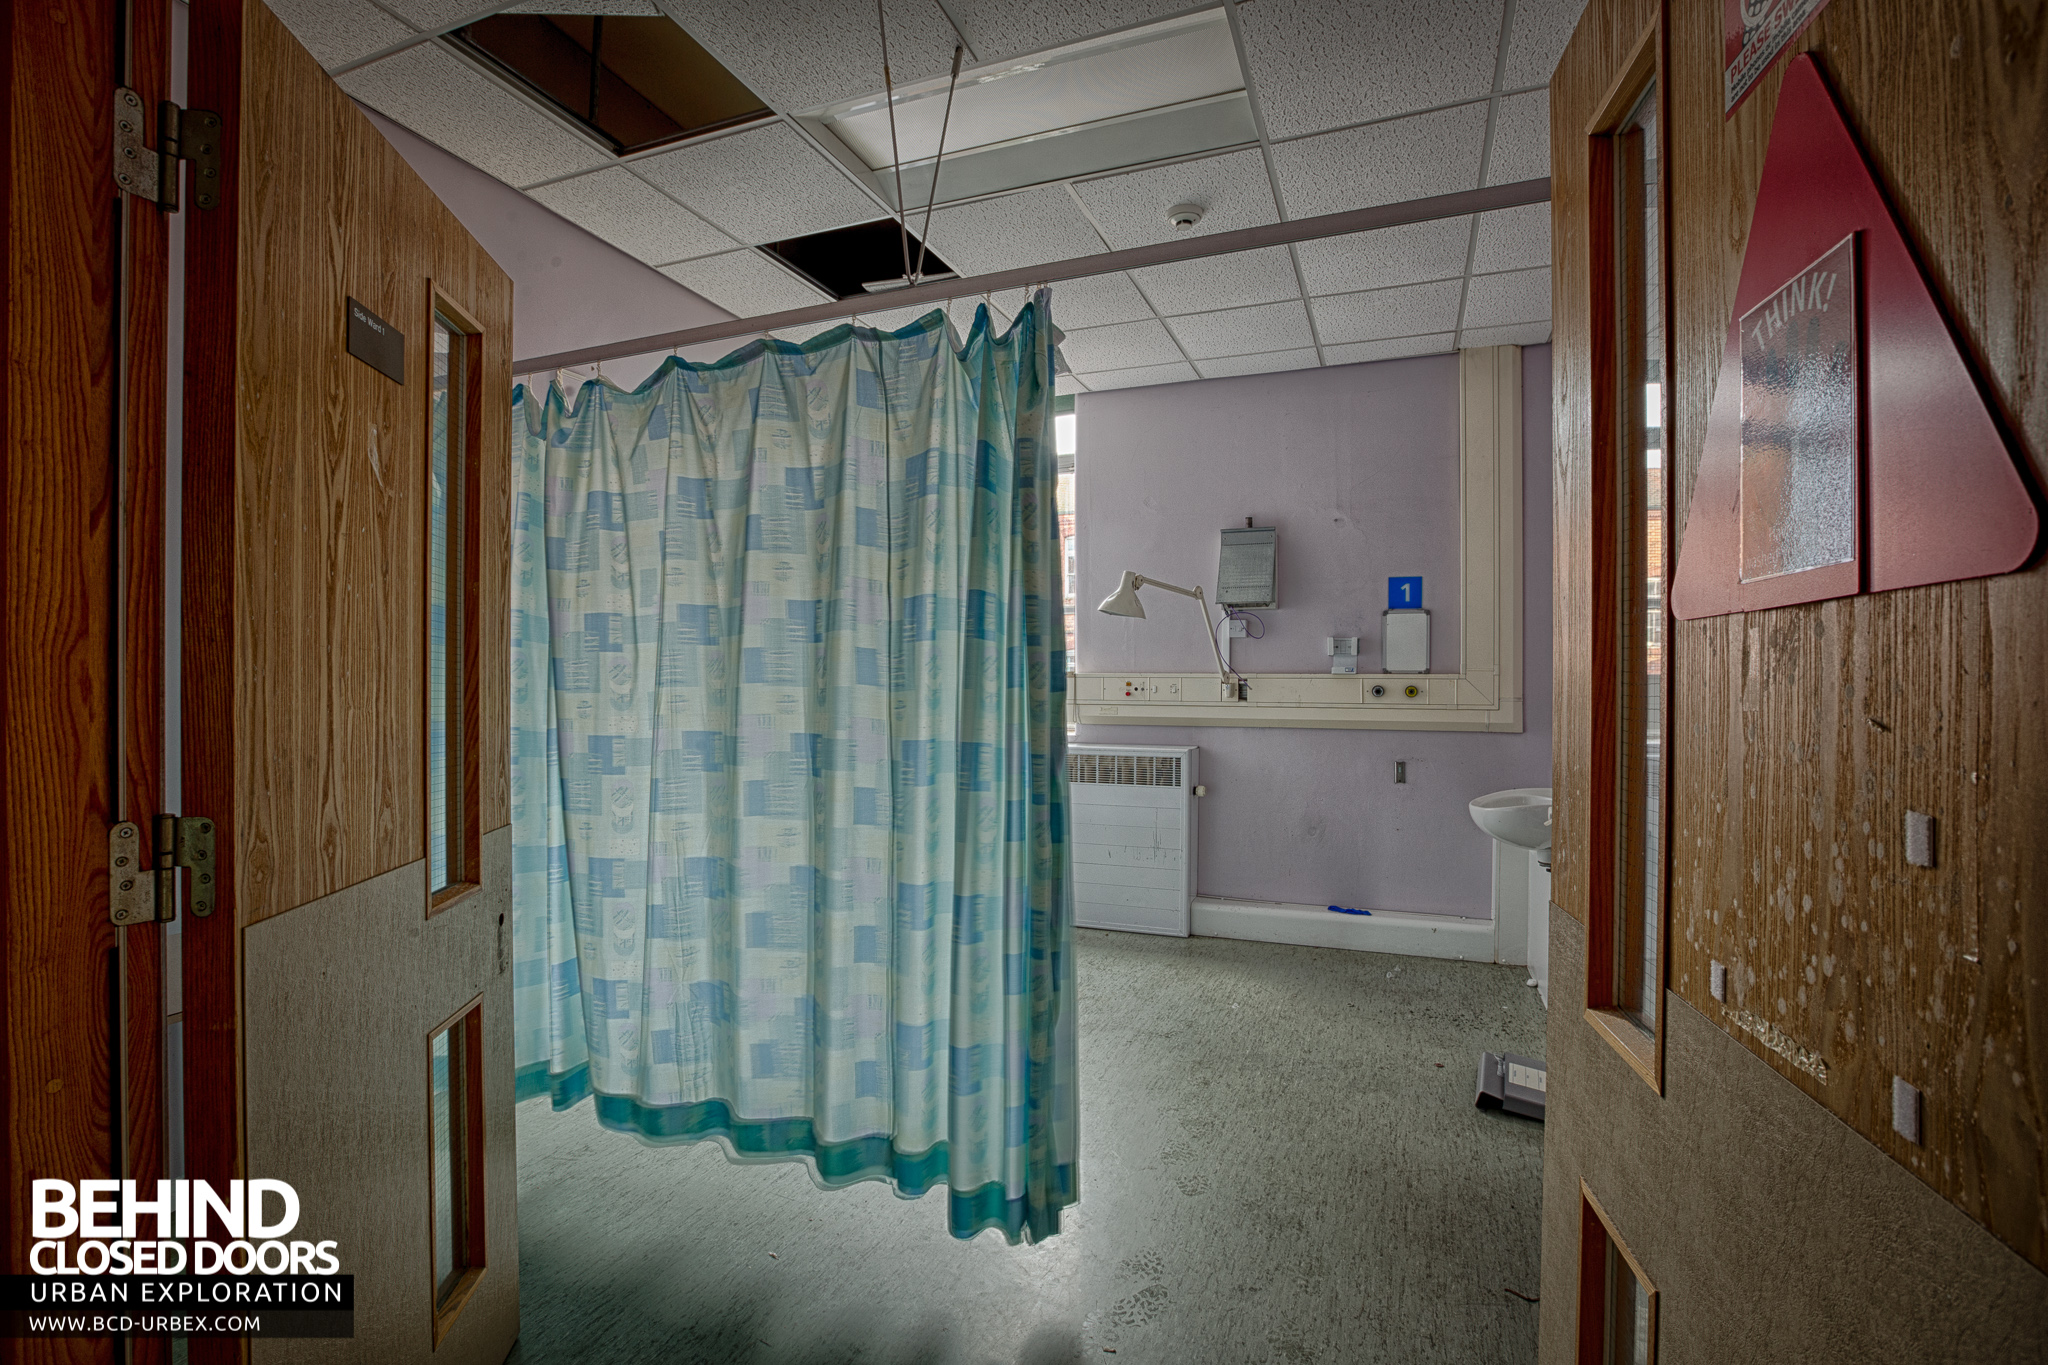 Selly Oak Hospital U2013 Curtain In A Room